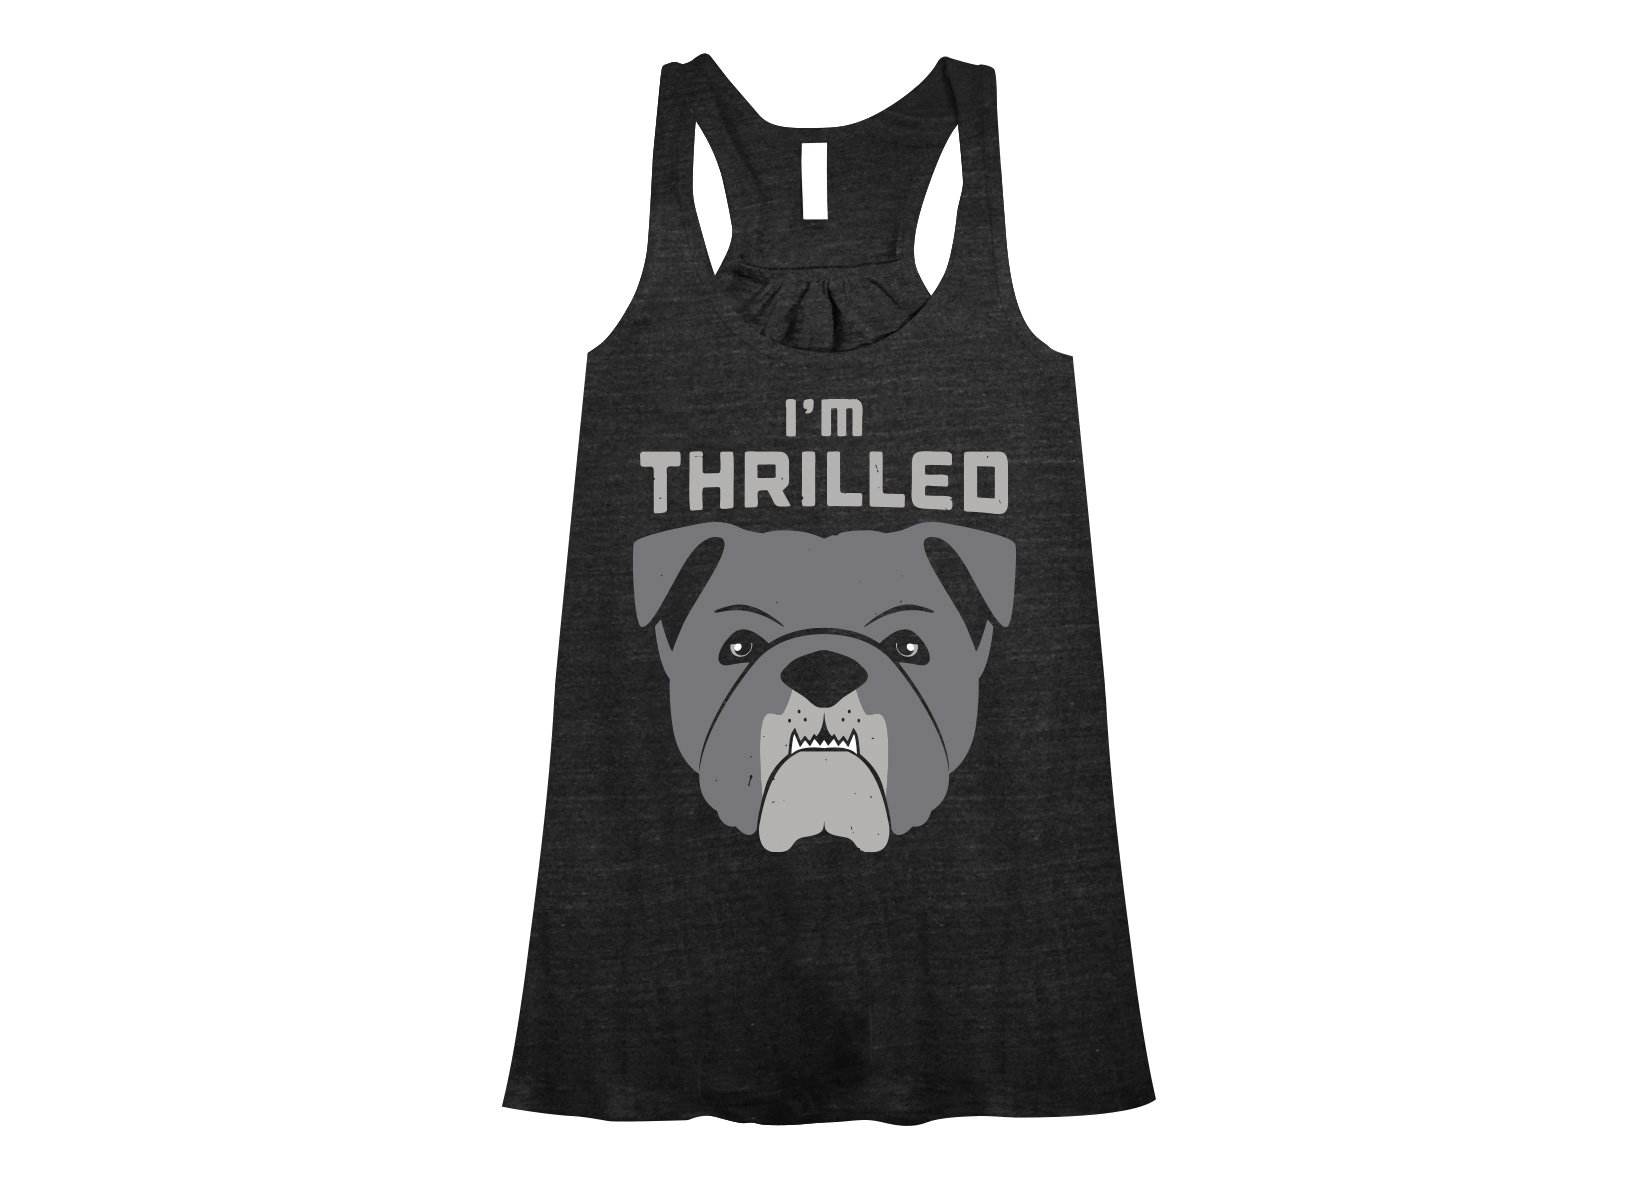 I'm Thrilled on Womens Tanks T-Shirt